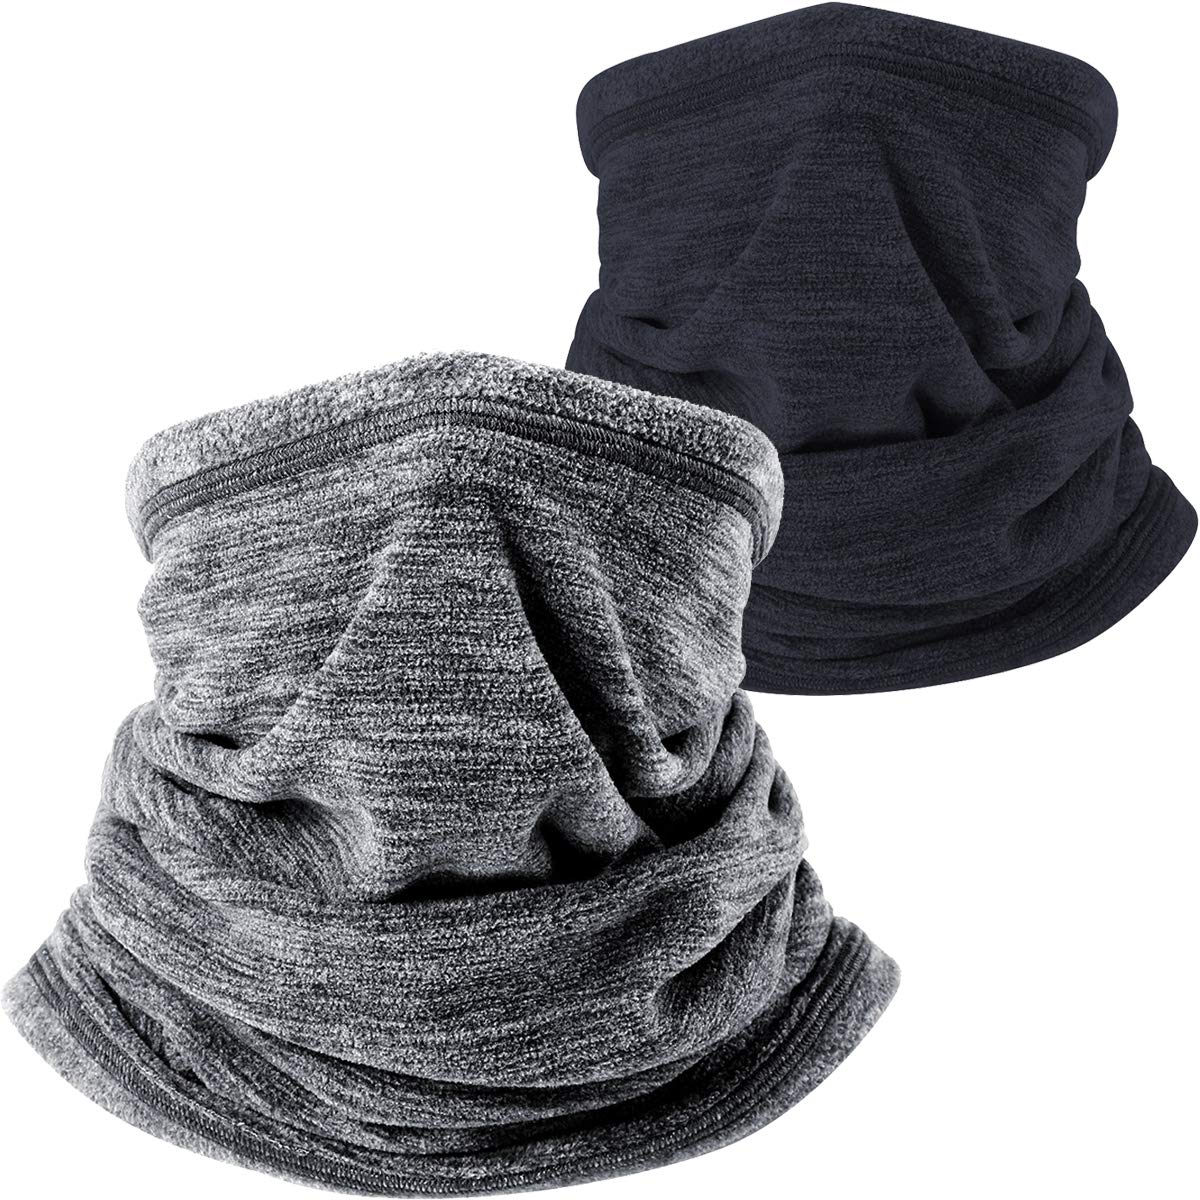 2f804b5c5 WTACTFUL 2 Pack or 1 Pack - Soft Fleece Neck Gaiter Warmer Face Mask for  Cold